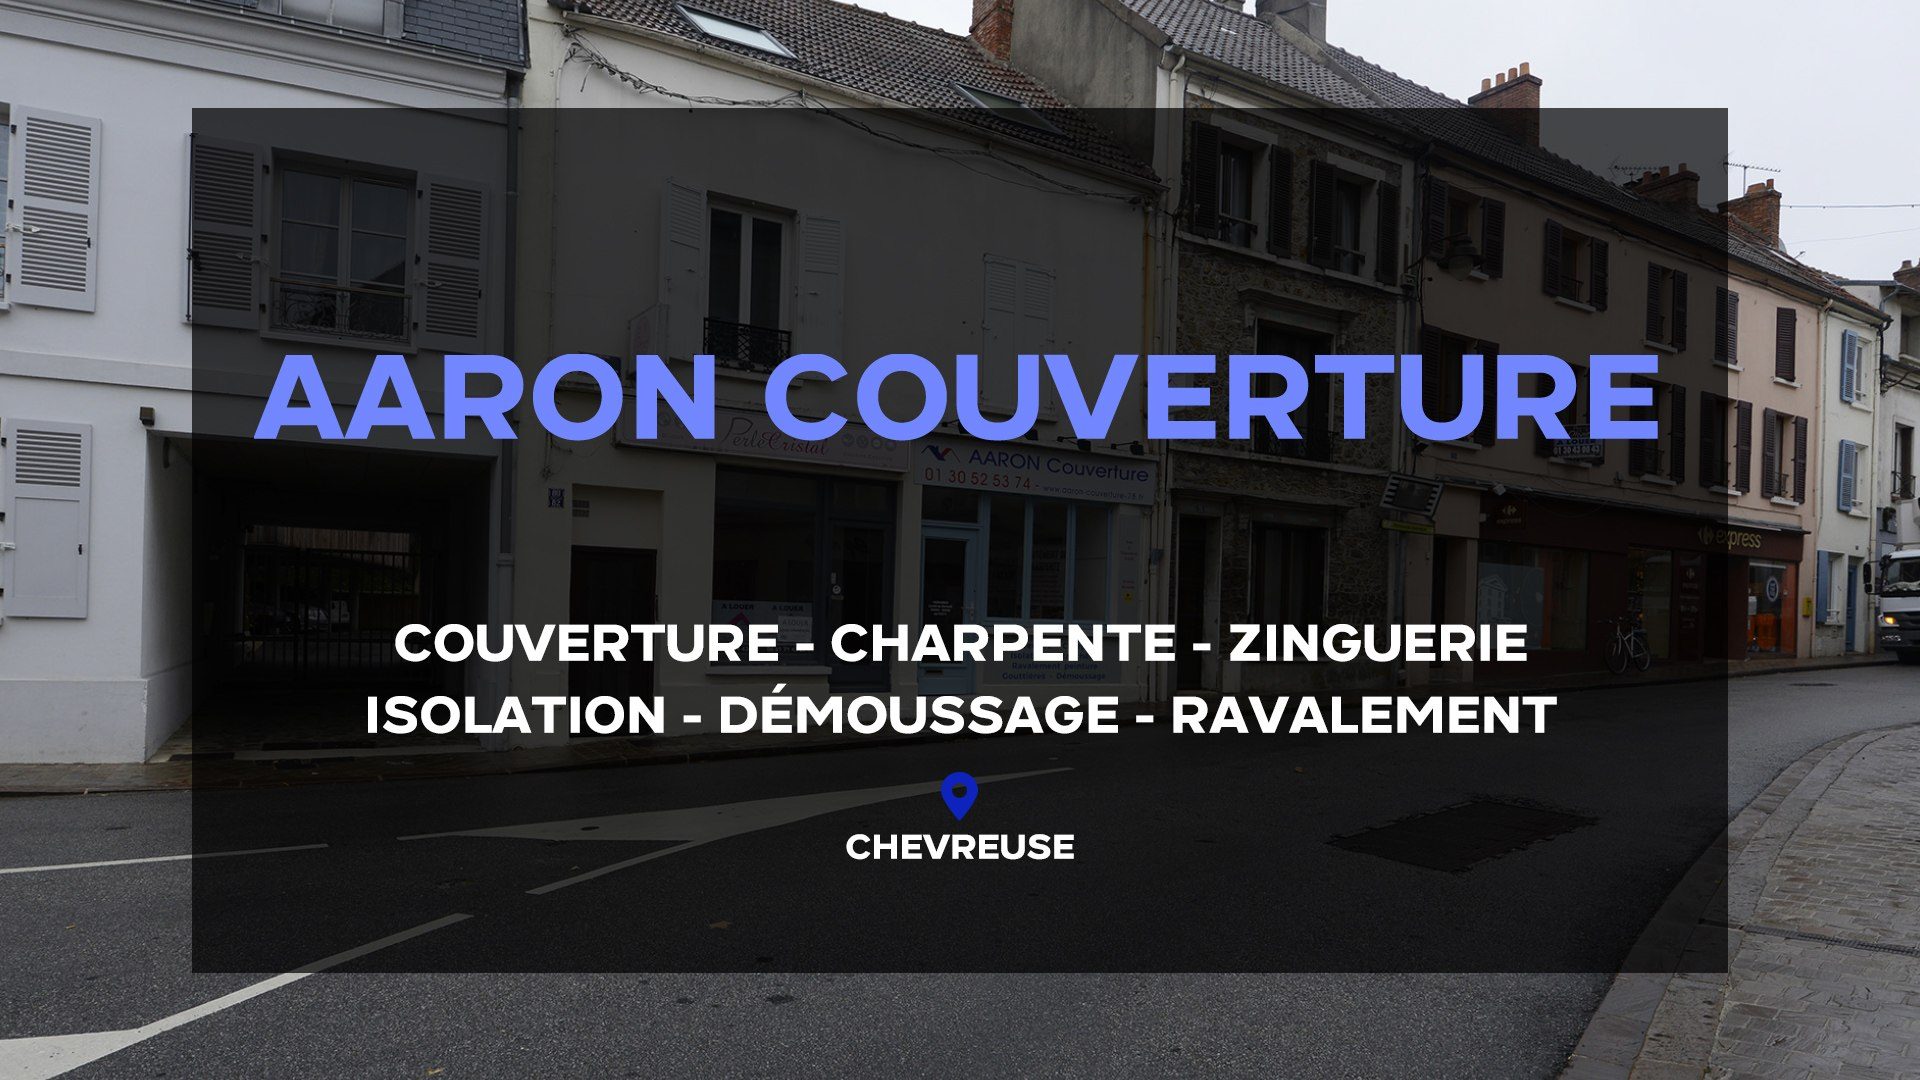 Aaron Couverture